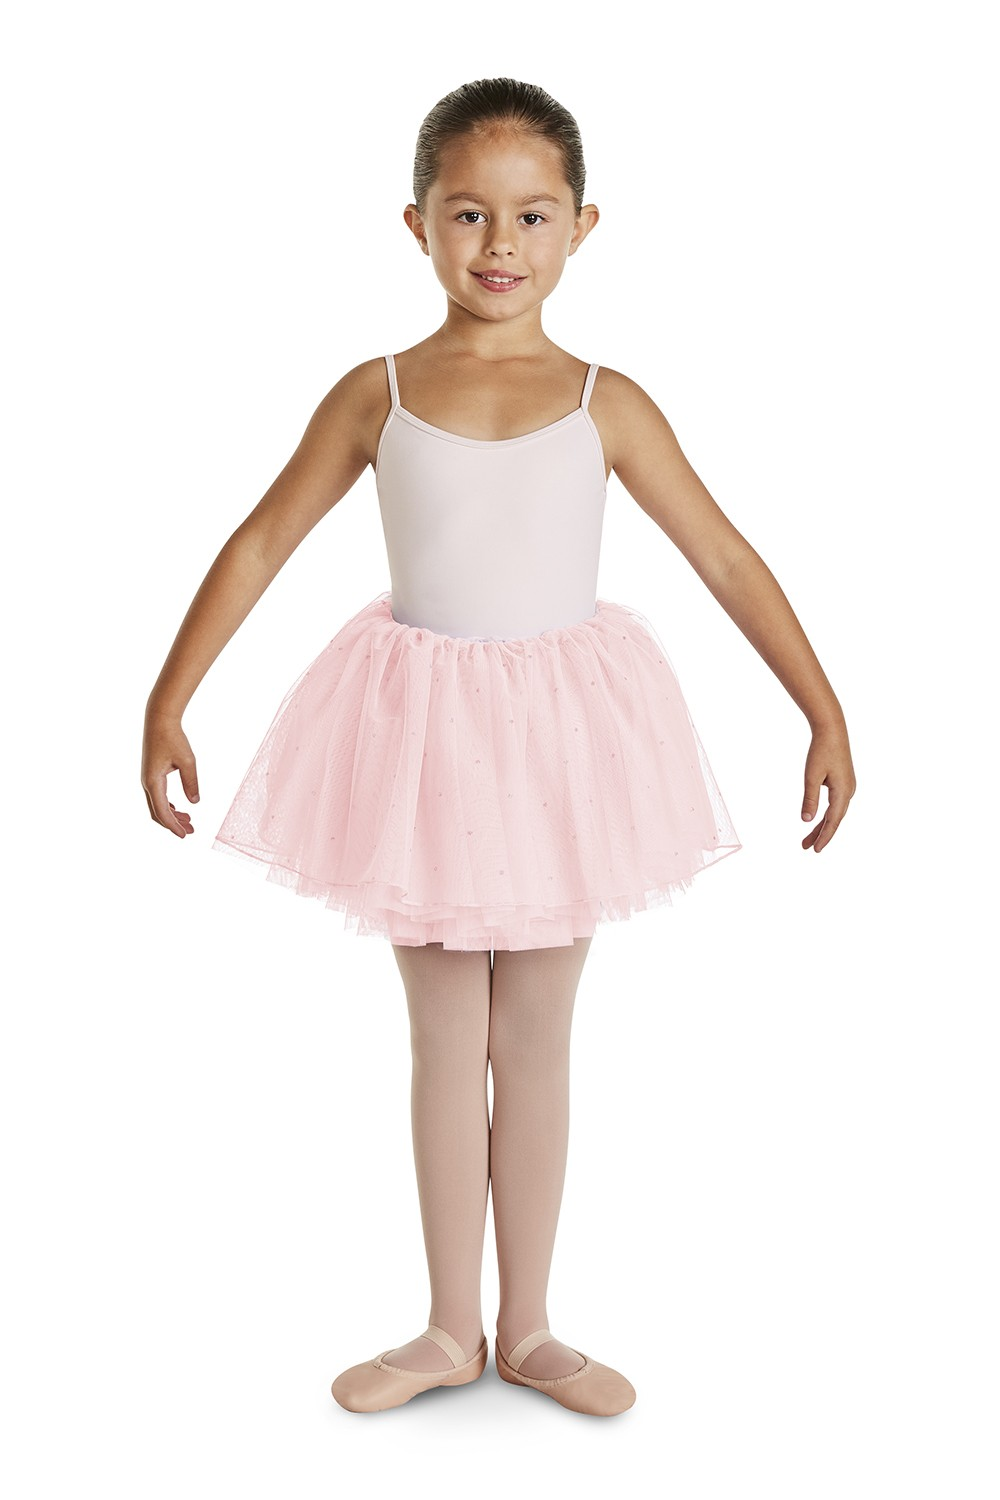 16570f1de BLOCH® Children's Dance & Ballet Skirts - BLOCH® US Store